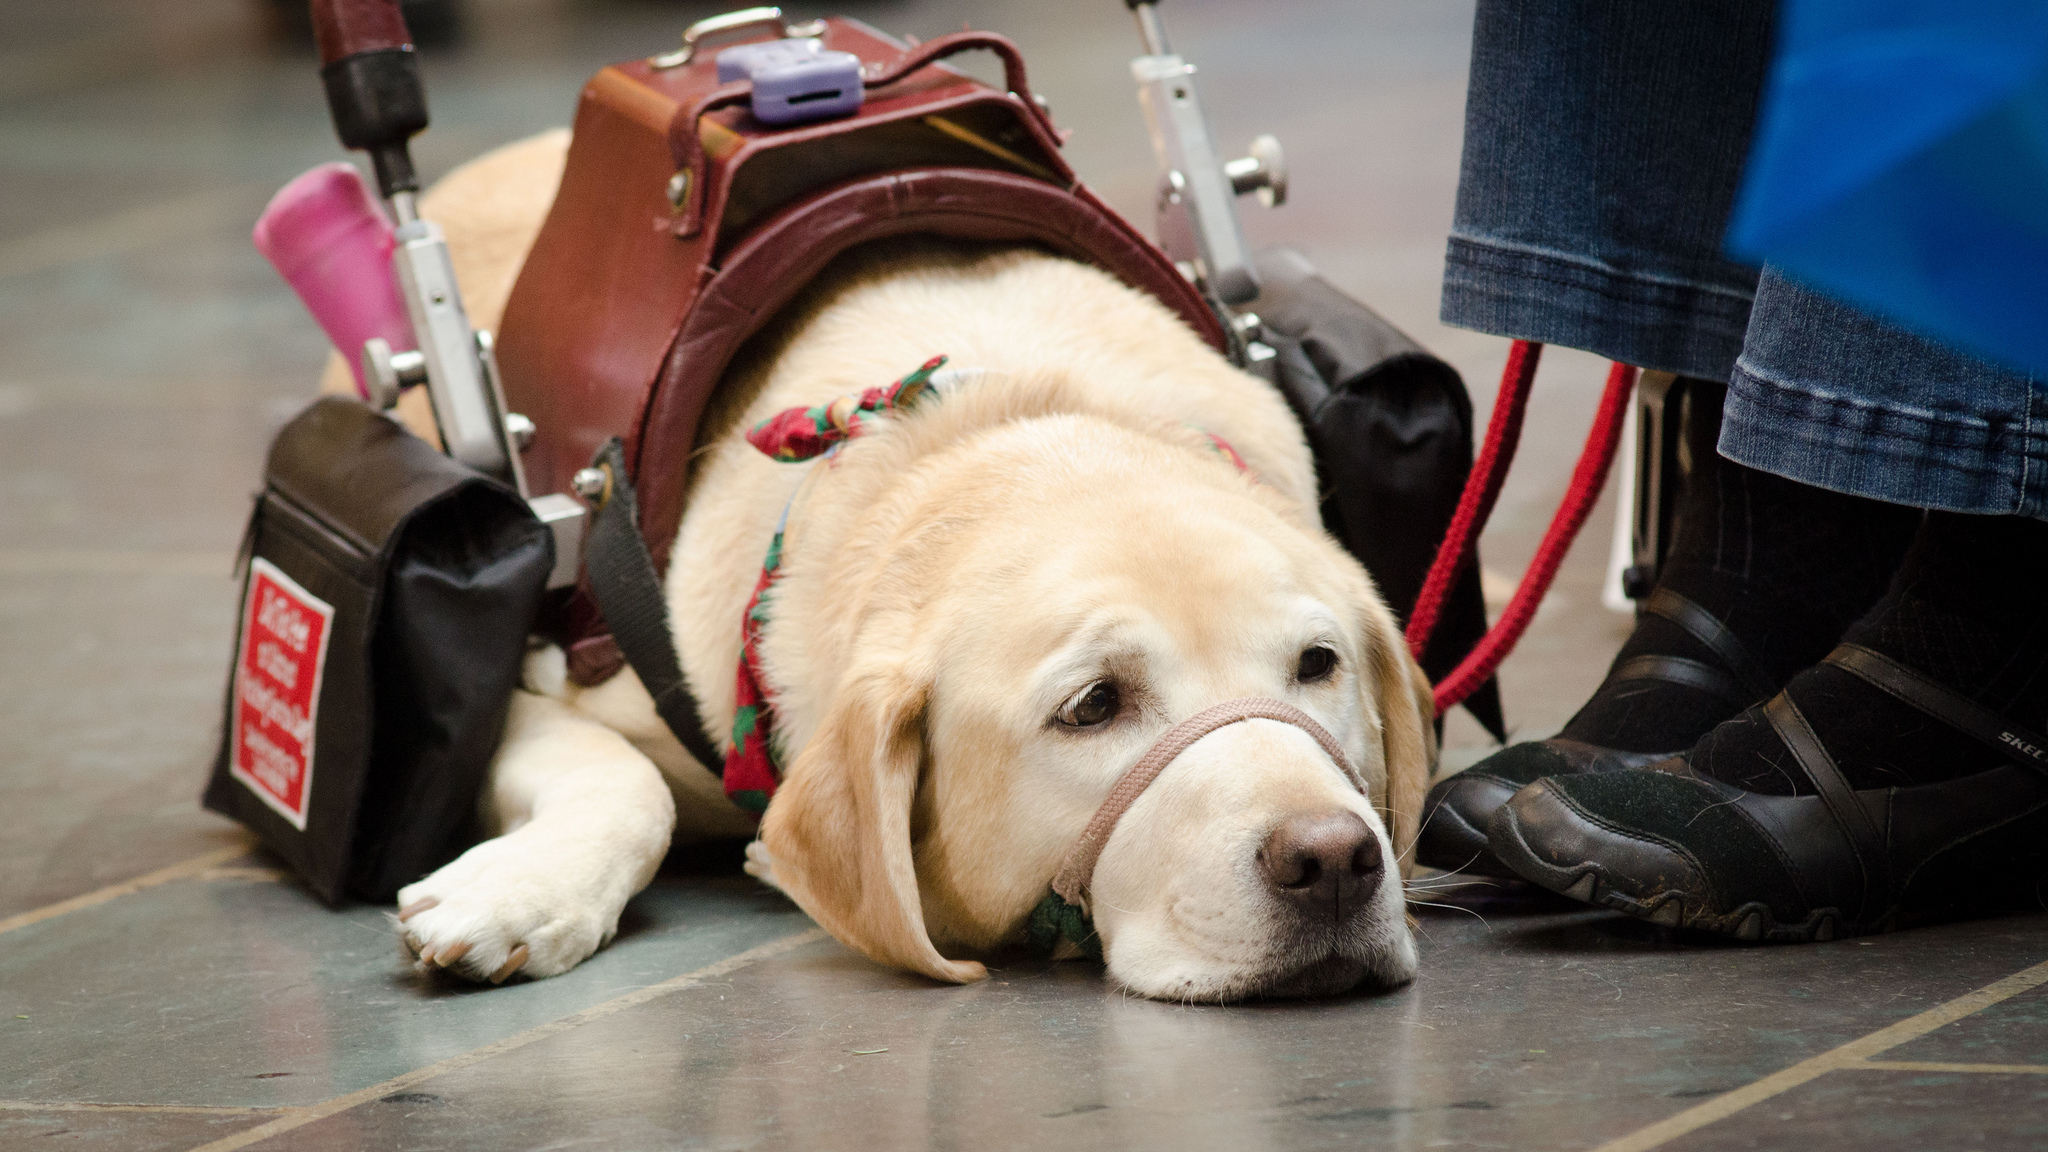 A Step By Step Guide To Becoming A Service Dog The Dog People By